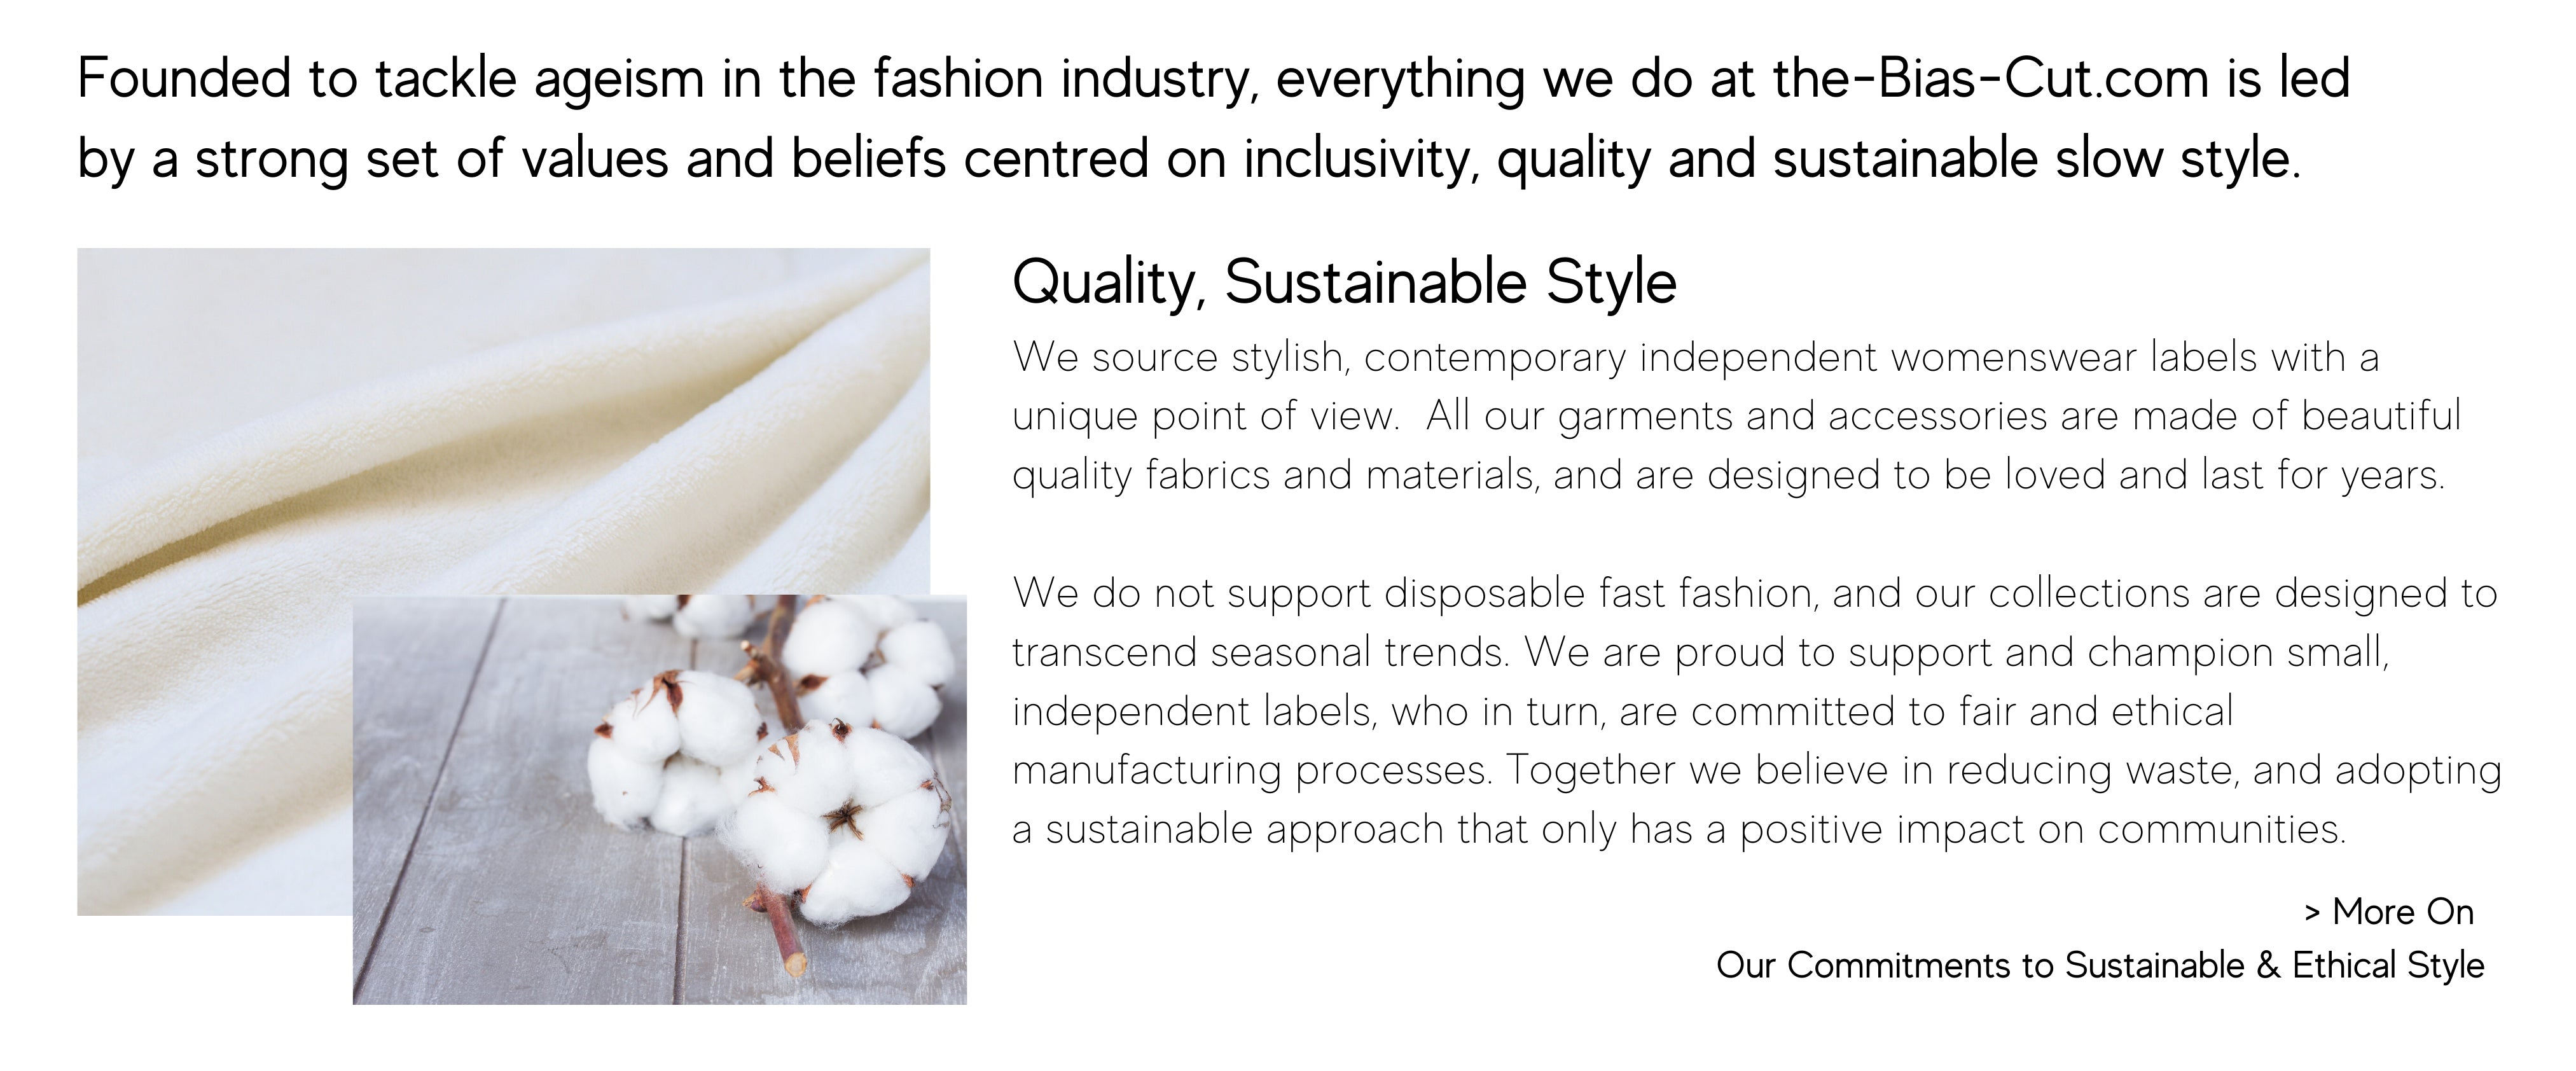 Founded to tackle ageism in the fashion industry, everything we do at the-Bias-Cut.com is led by a strong set of values and beliefs centred on inclusivity, quality and sustainable slow style. We source stylish, contemporary independent womenswear labels with a unique point of view.  All our garments and accessories are made of beautiful quality fabrics and materials, and are designed to be loved and last for years.   We do not support disposable fast fashion, and our collections are designed to transcend seasonal trends. We are proud to support and champion small, independent labels, who in turn, are committed to fair and ethical manufacturing processes. Together we believe in reducing waste, and adopting a sustainable approach that only has a positive impact on communities.